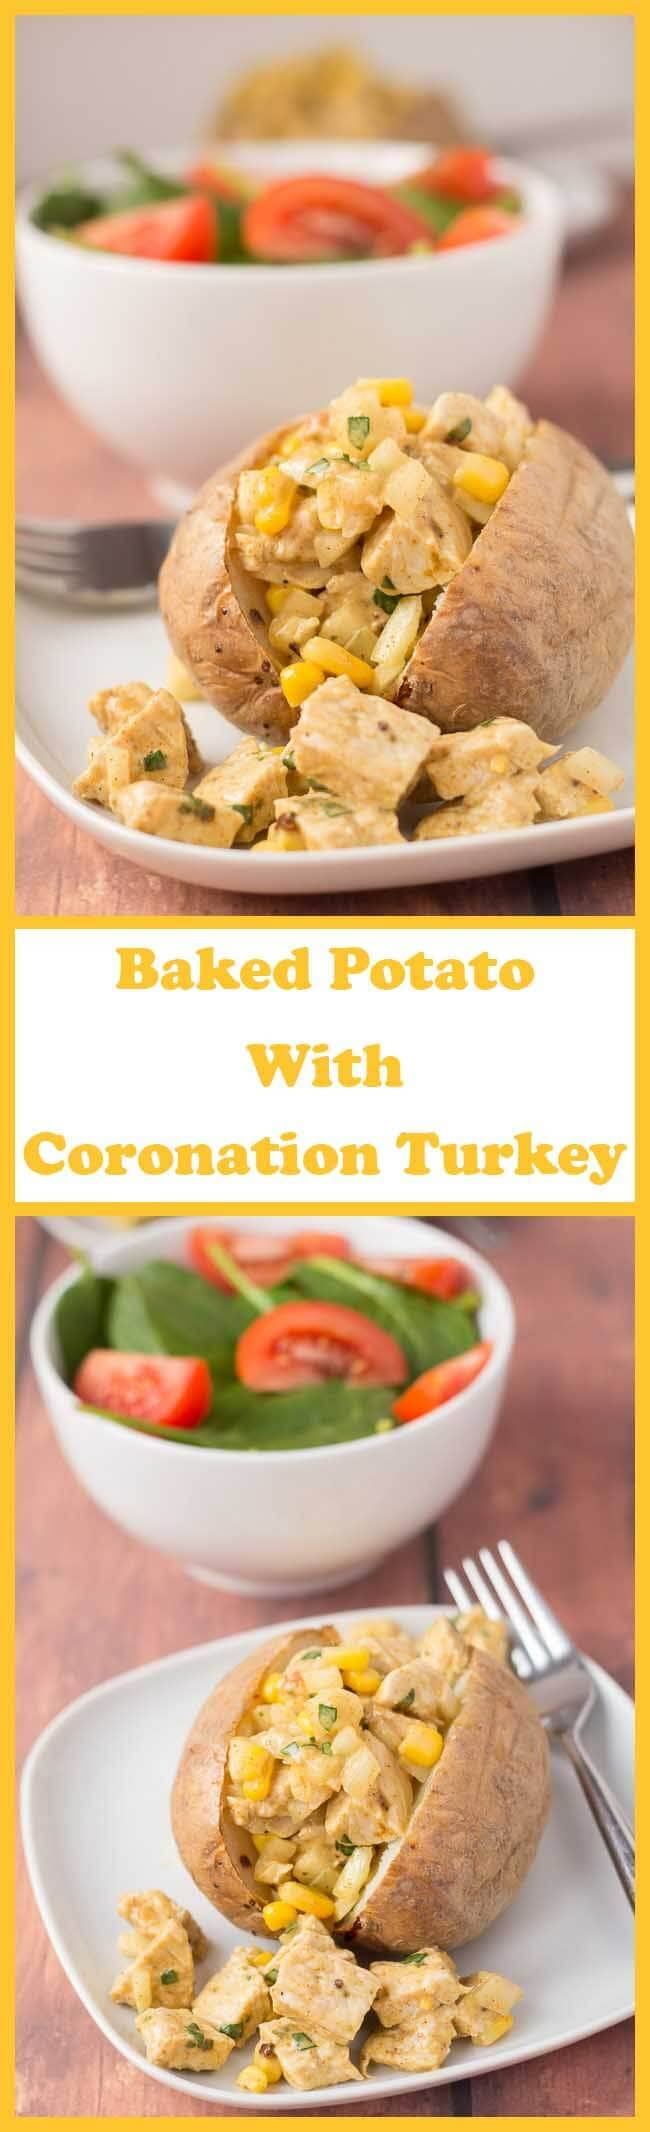 This baked potato with Coronation turkey recipe makes for a delicious quick healthy meal. Based on the classic Coronation chicken with fresh and lightly spiced flavours it's a great way of using up leftover turkey too.